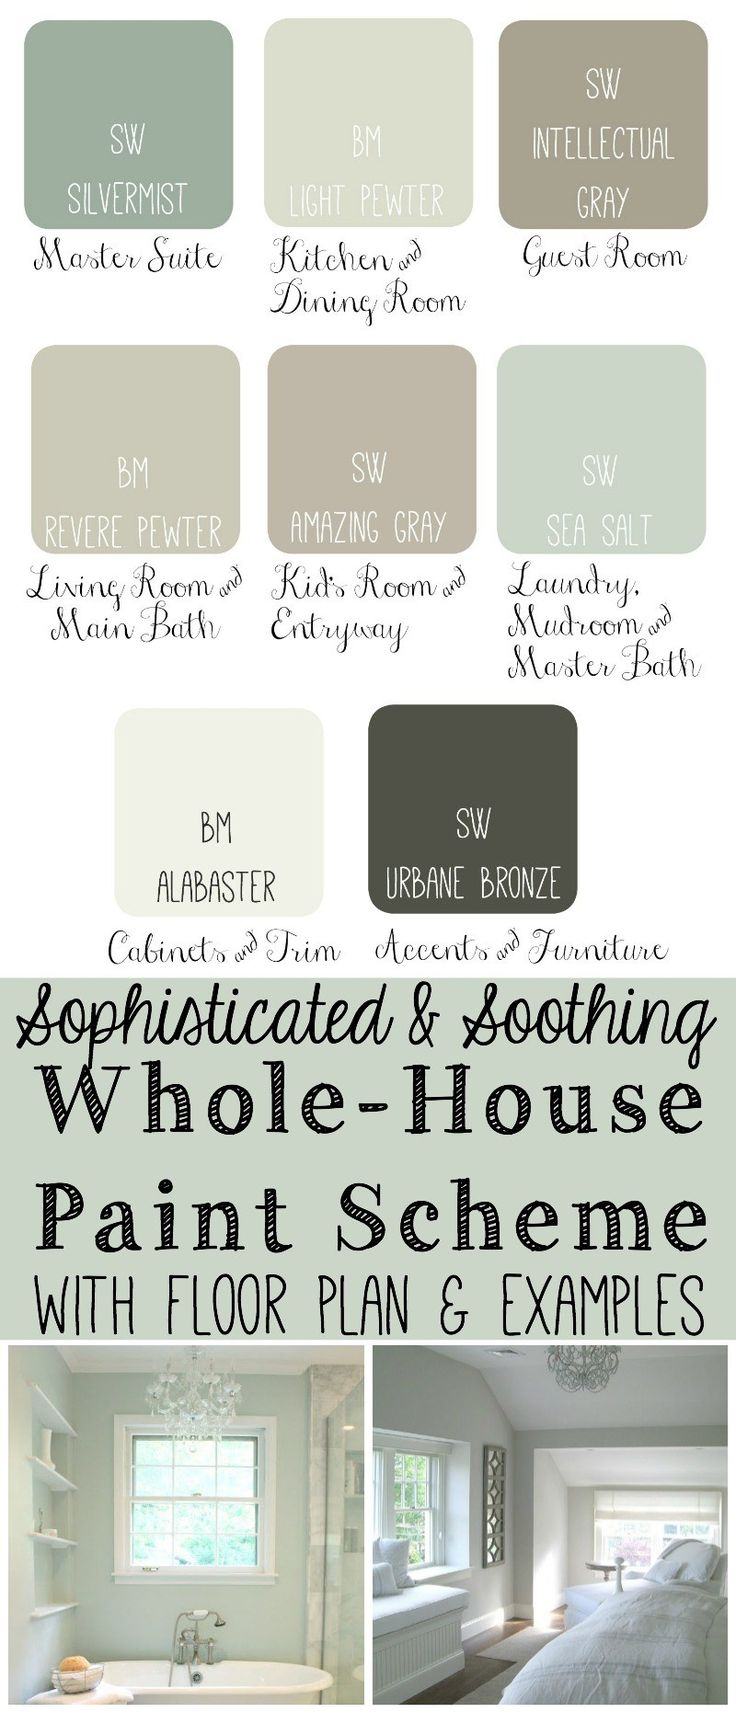 Best 25 mud paint ideas on pinterest how to paint furniture today i put together a whole house paint scheme i like to see how all the colors would look together kind of a paint color test drive nvjuhfo Choice Image